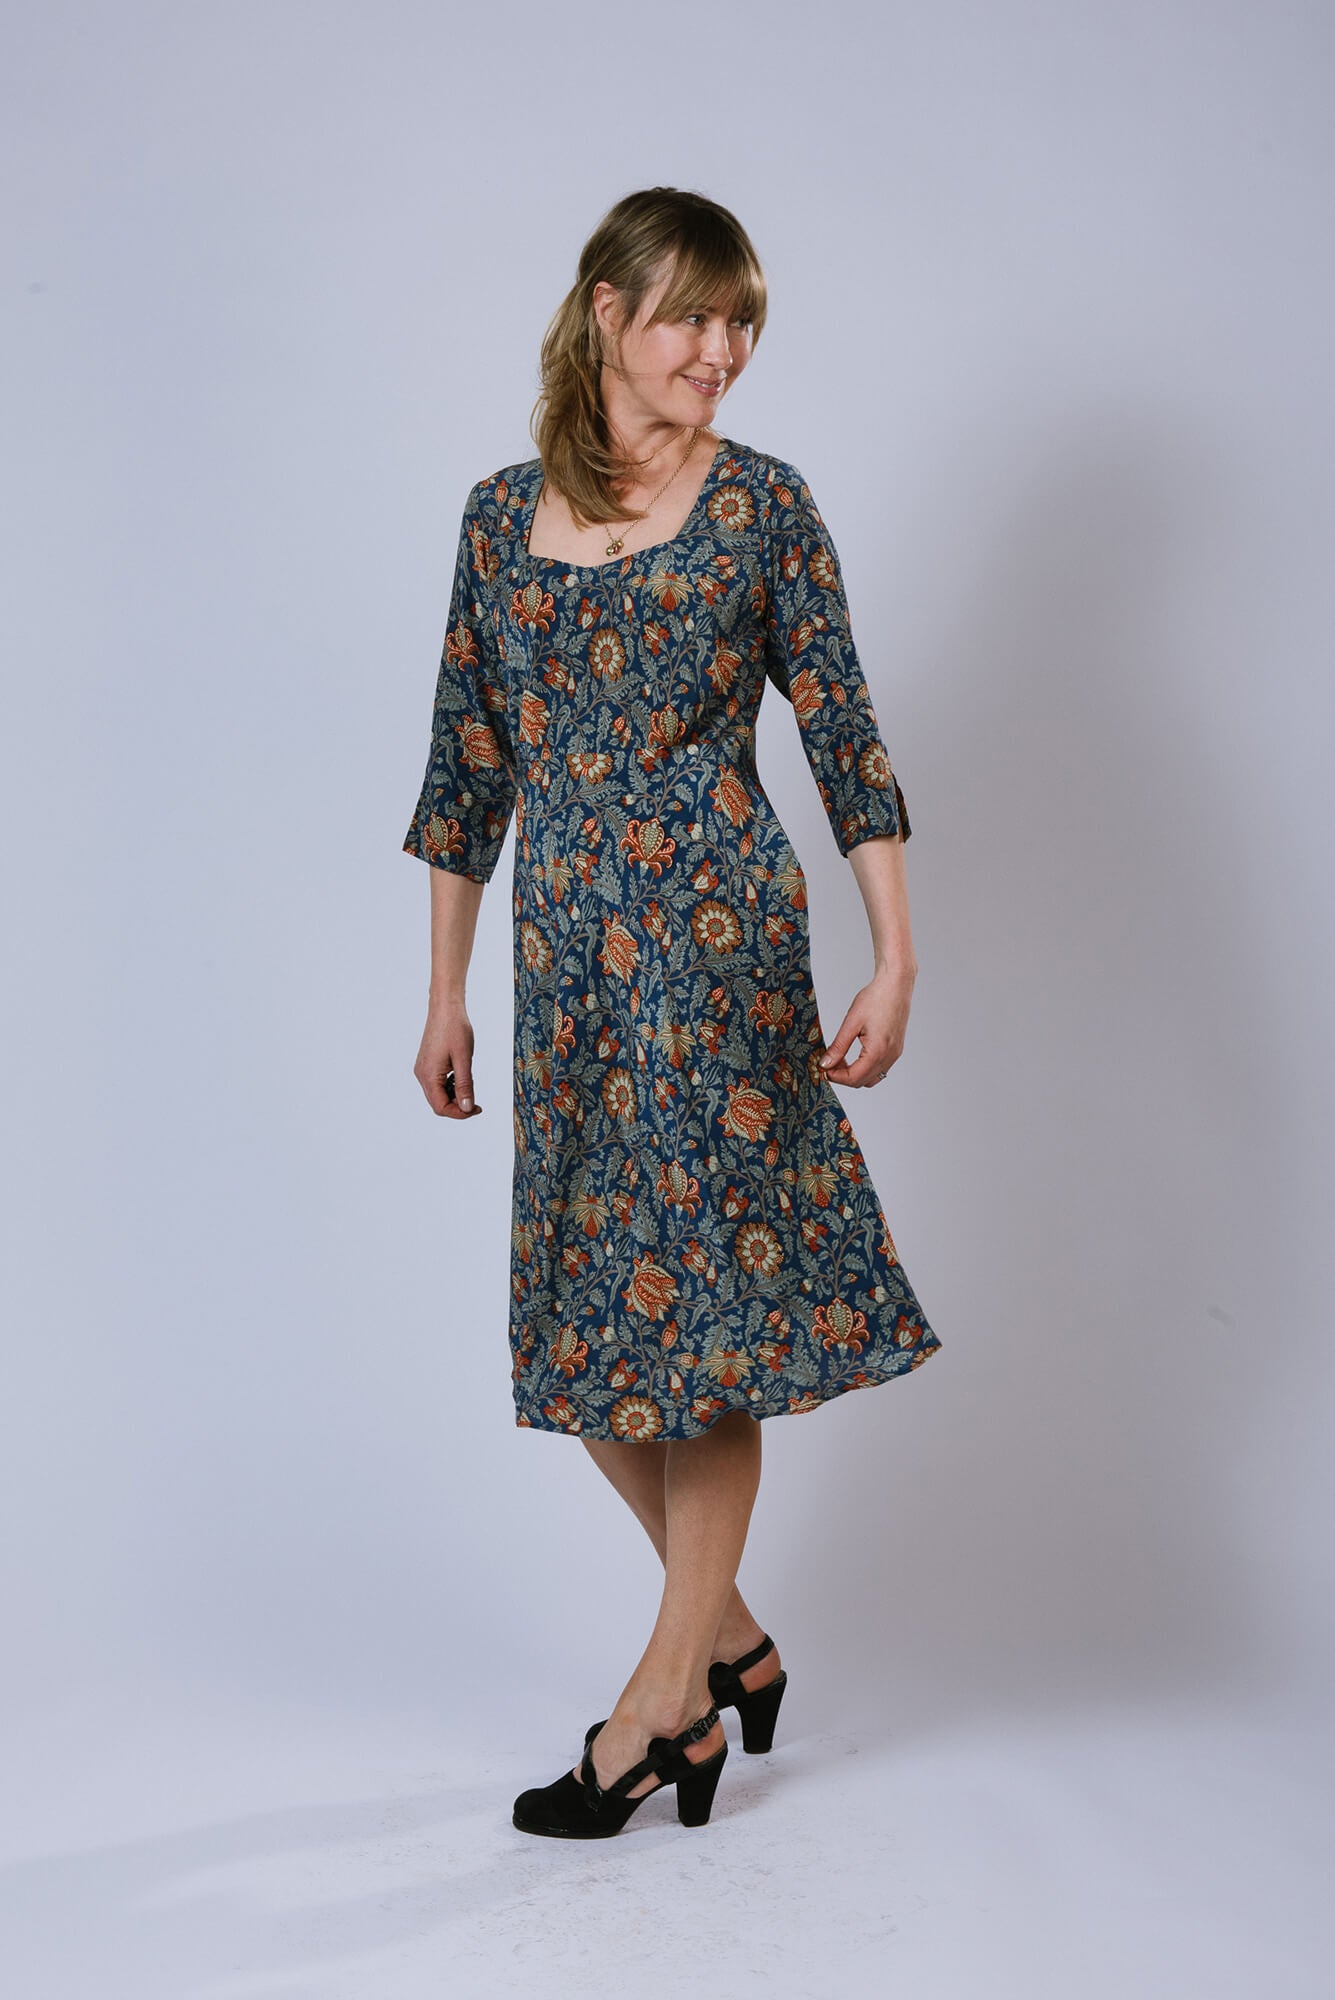 The Churchgate Dress